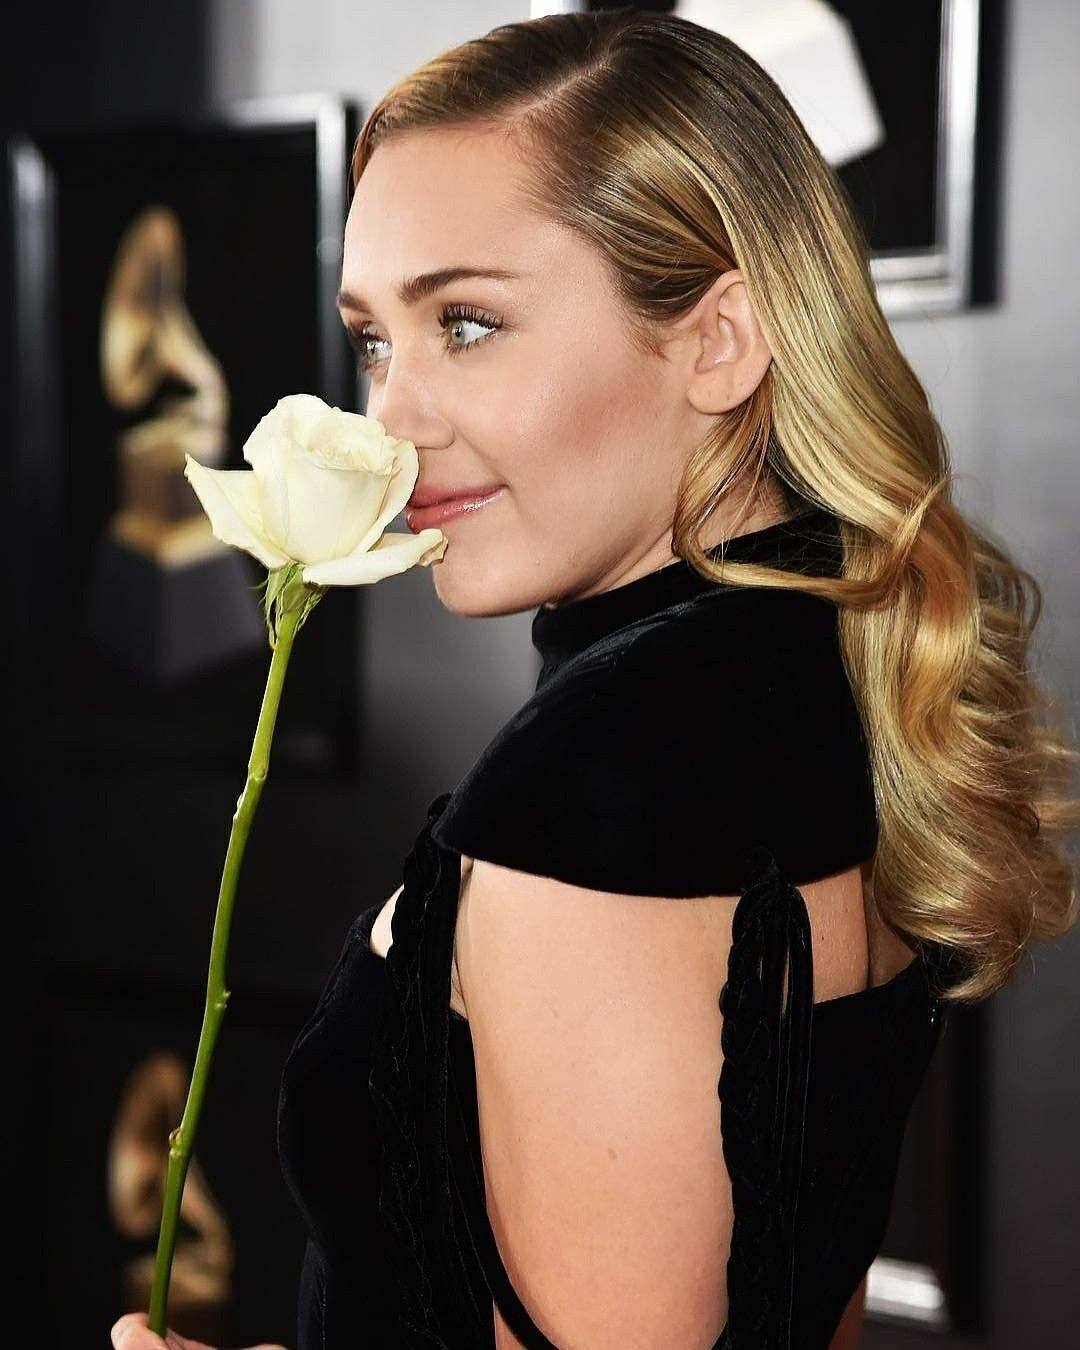 Miley Cyrus At The 2018 Grammys 2018 Grammys Pinterest Miley